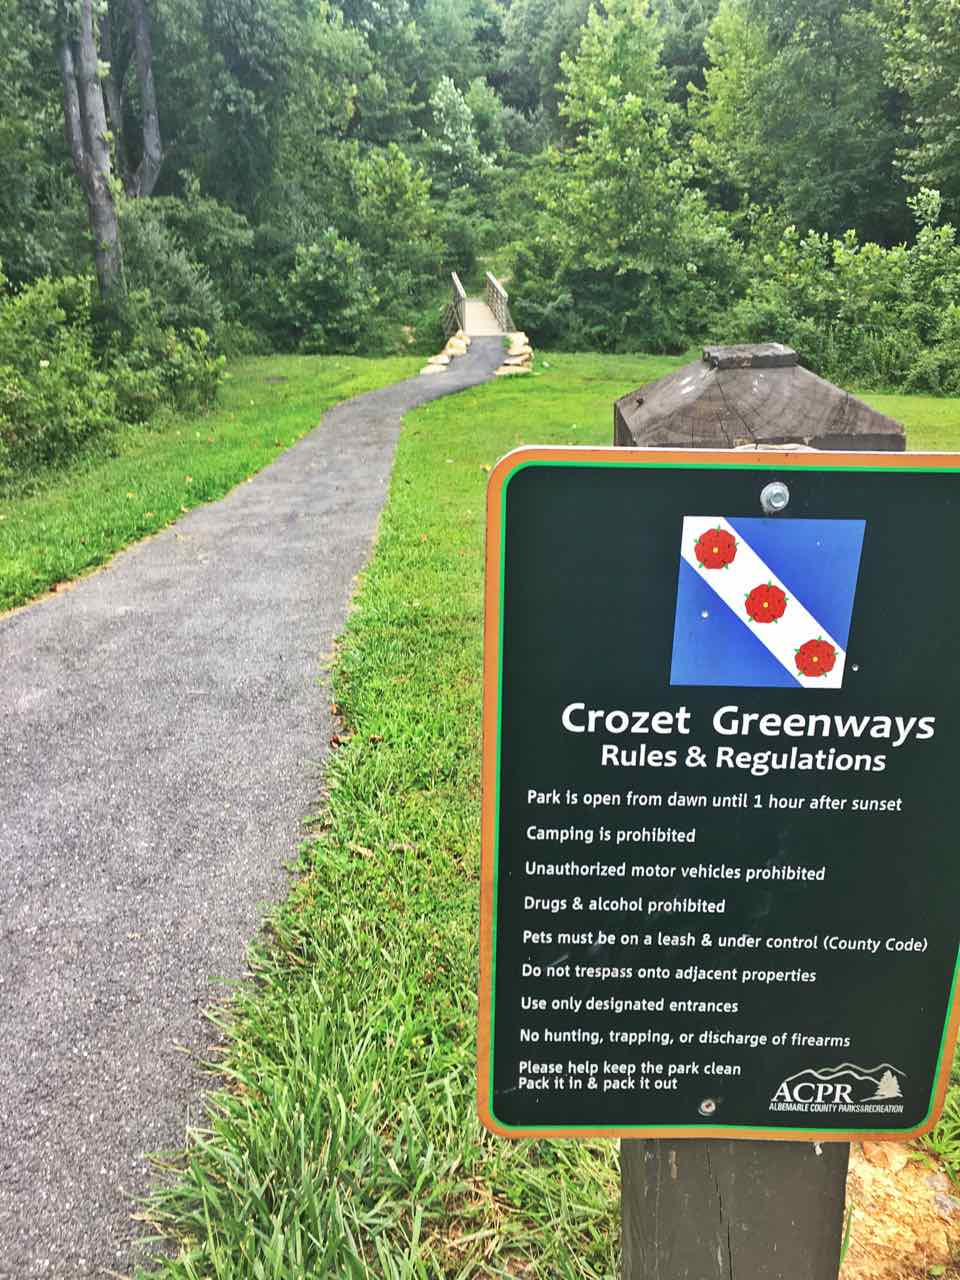 Westhall entrance to Crozet Greenway Trails.